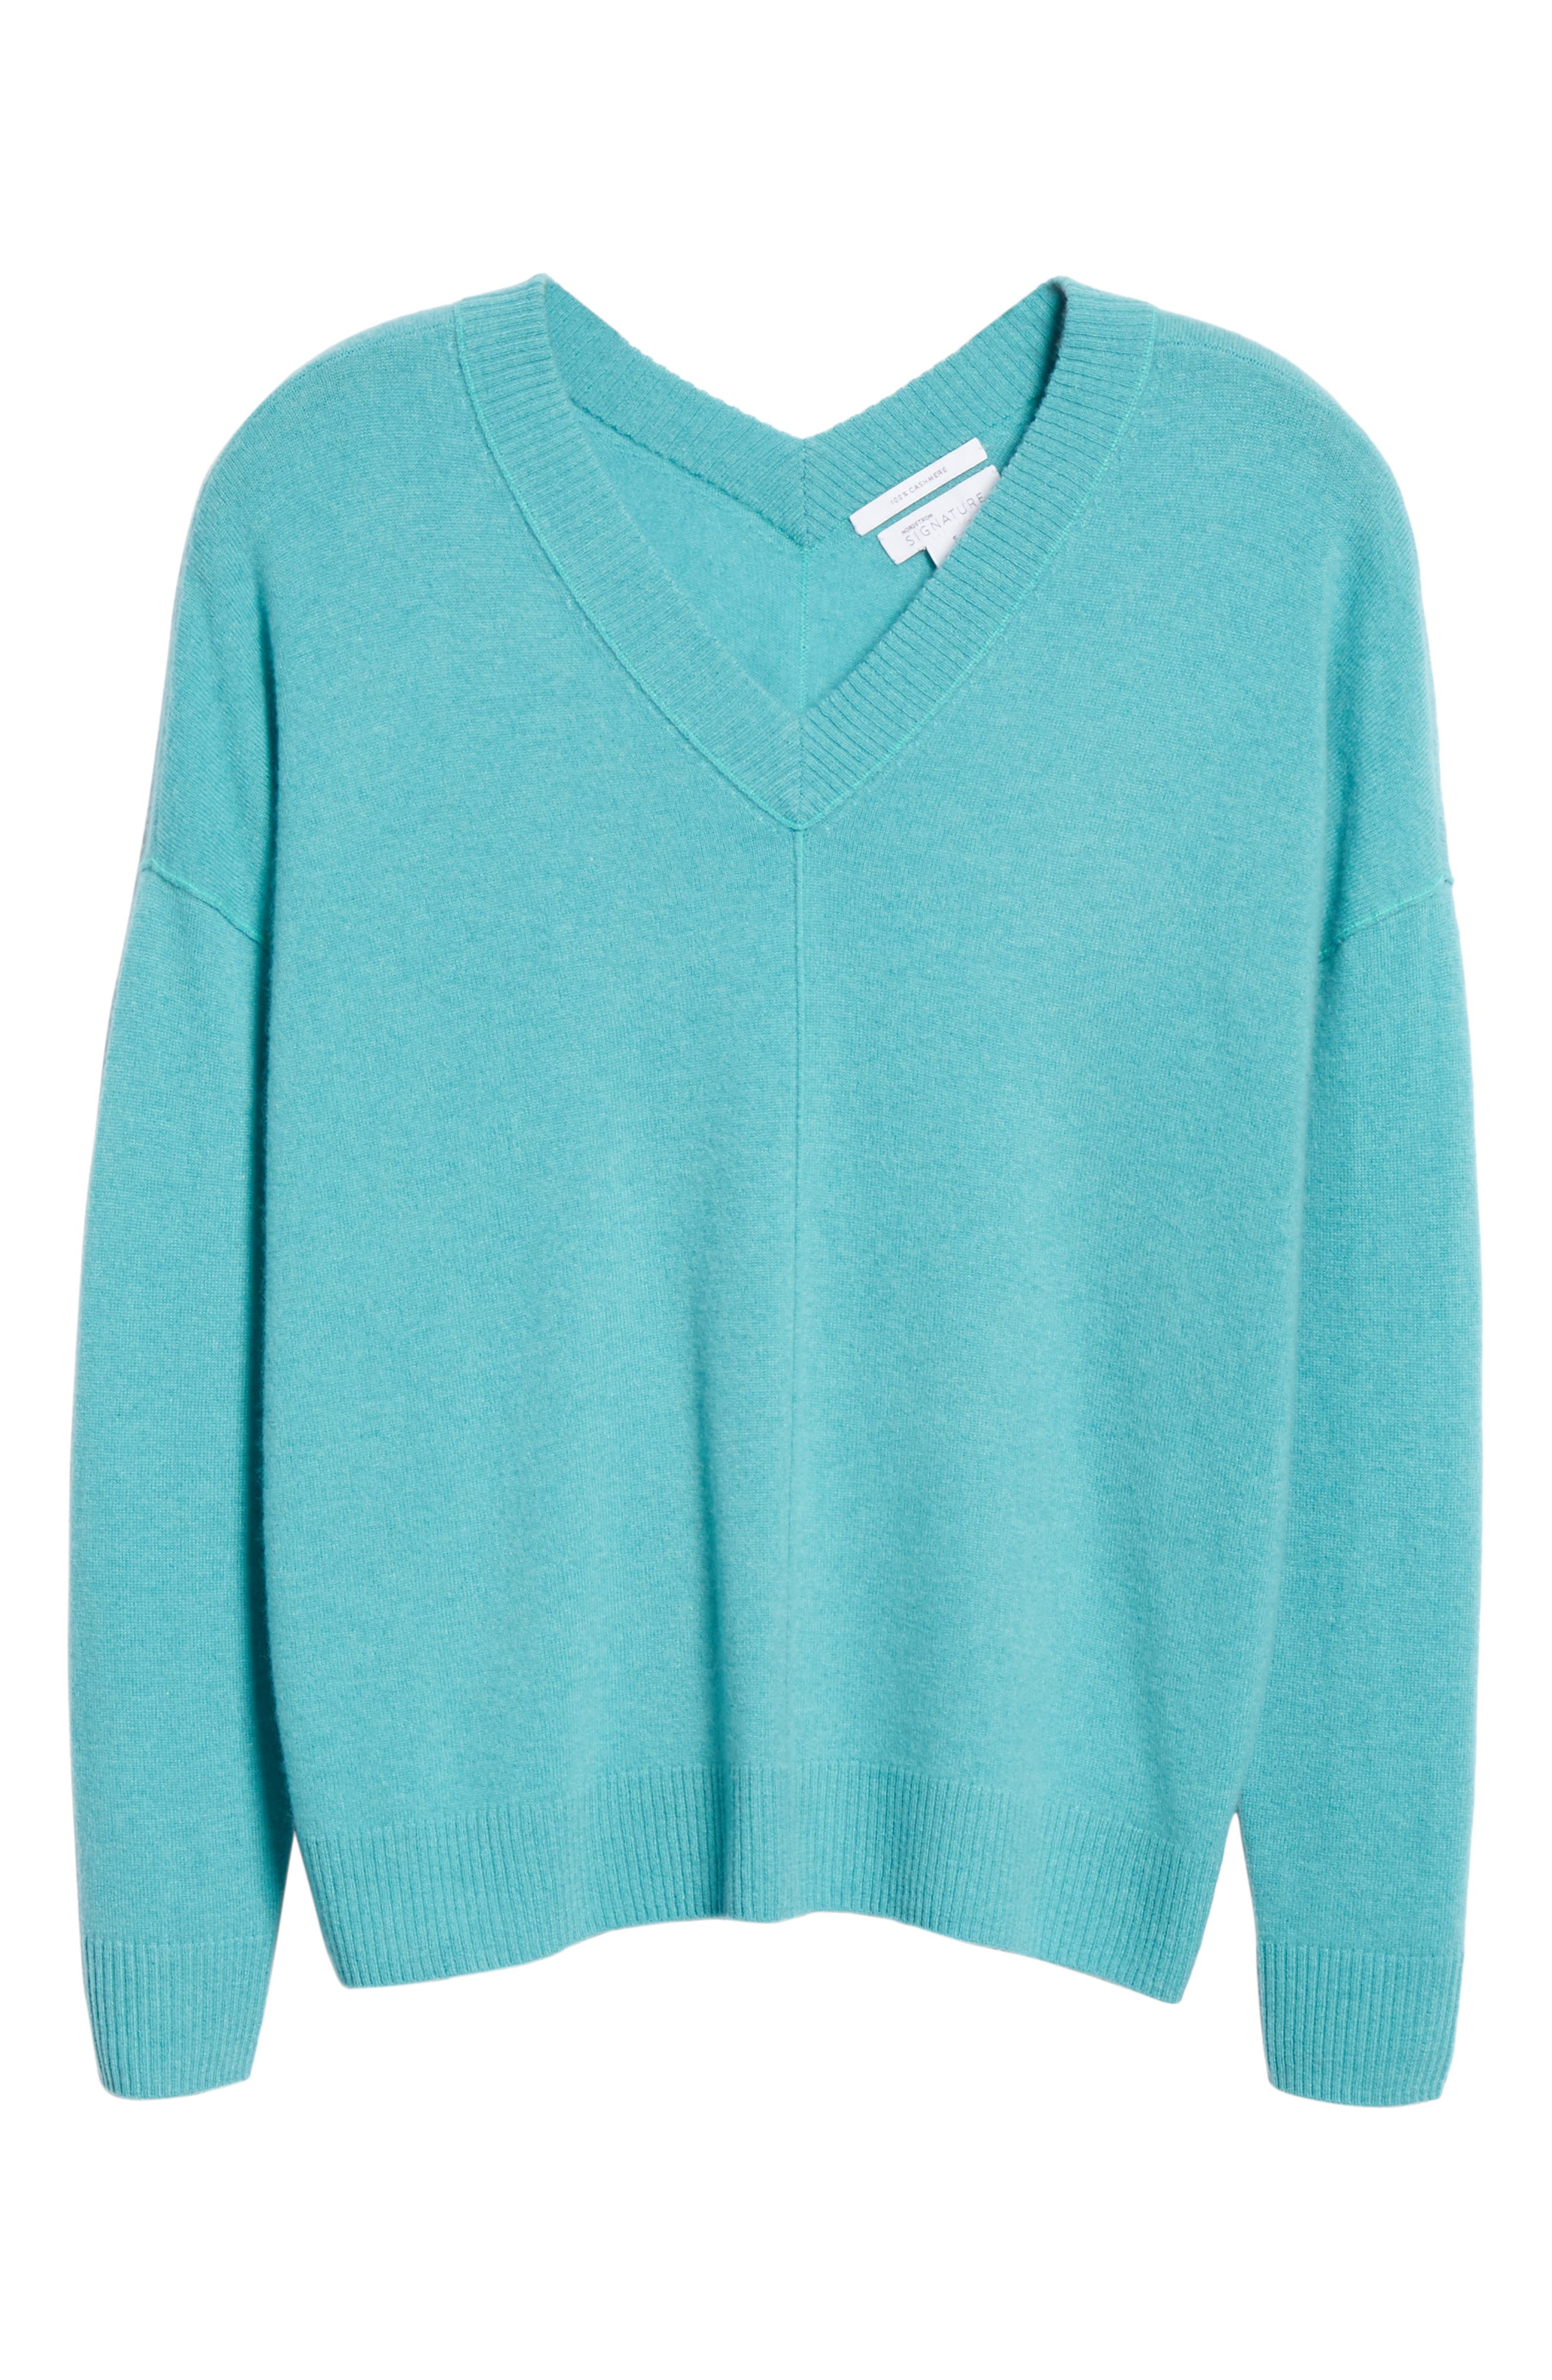 NORDSTROM SIGNATURE, Cashmere Double V-Neck Pullover, Alternate thumbnail 6, color, TEAL PORCELAIN